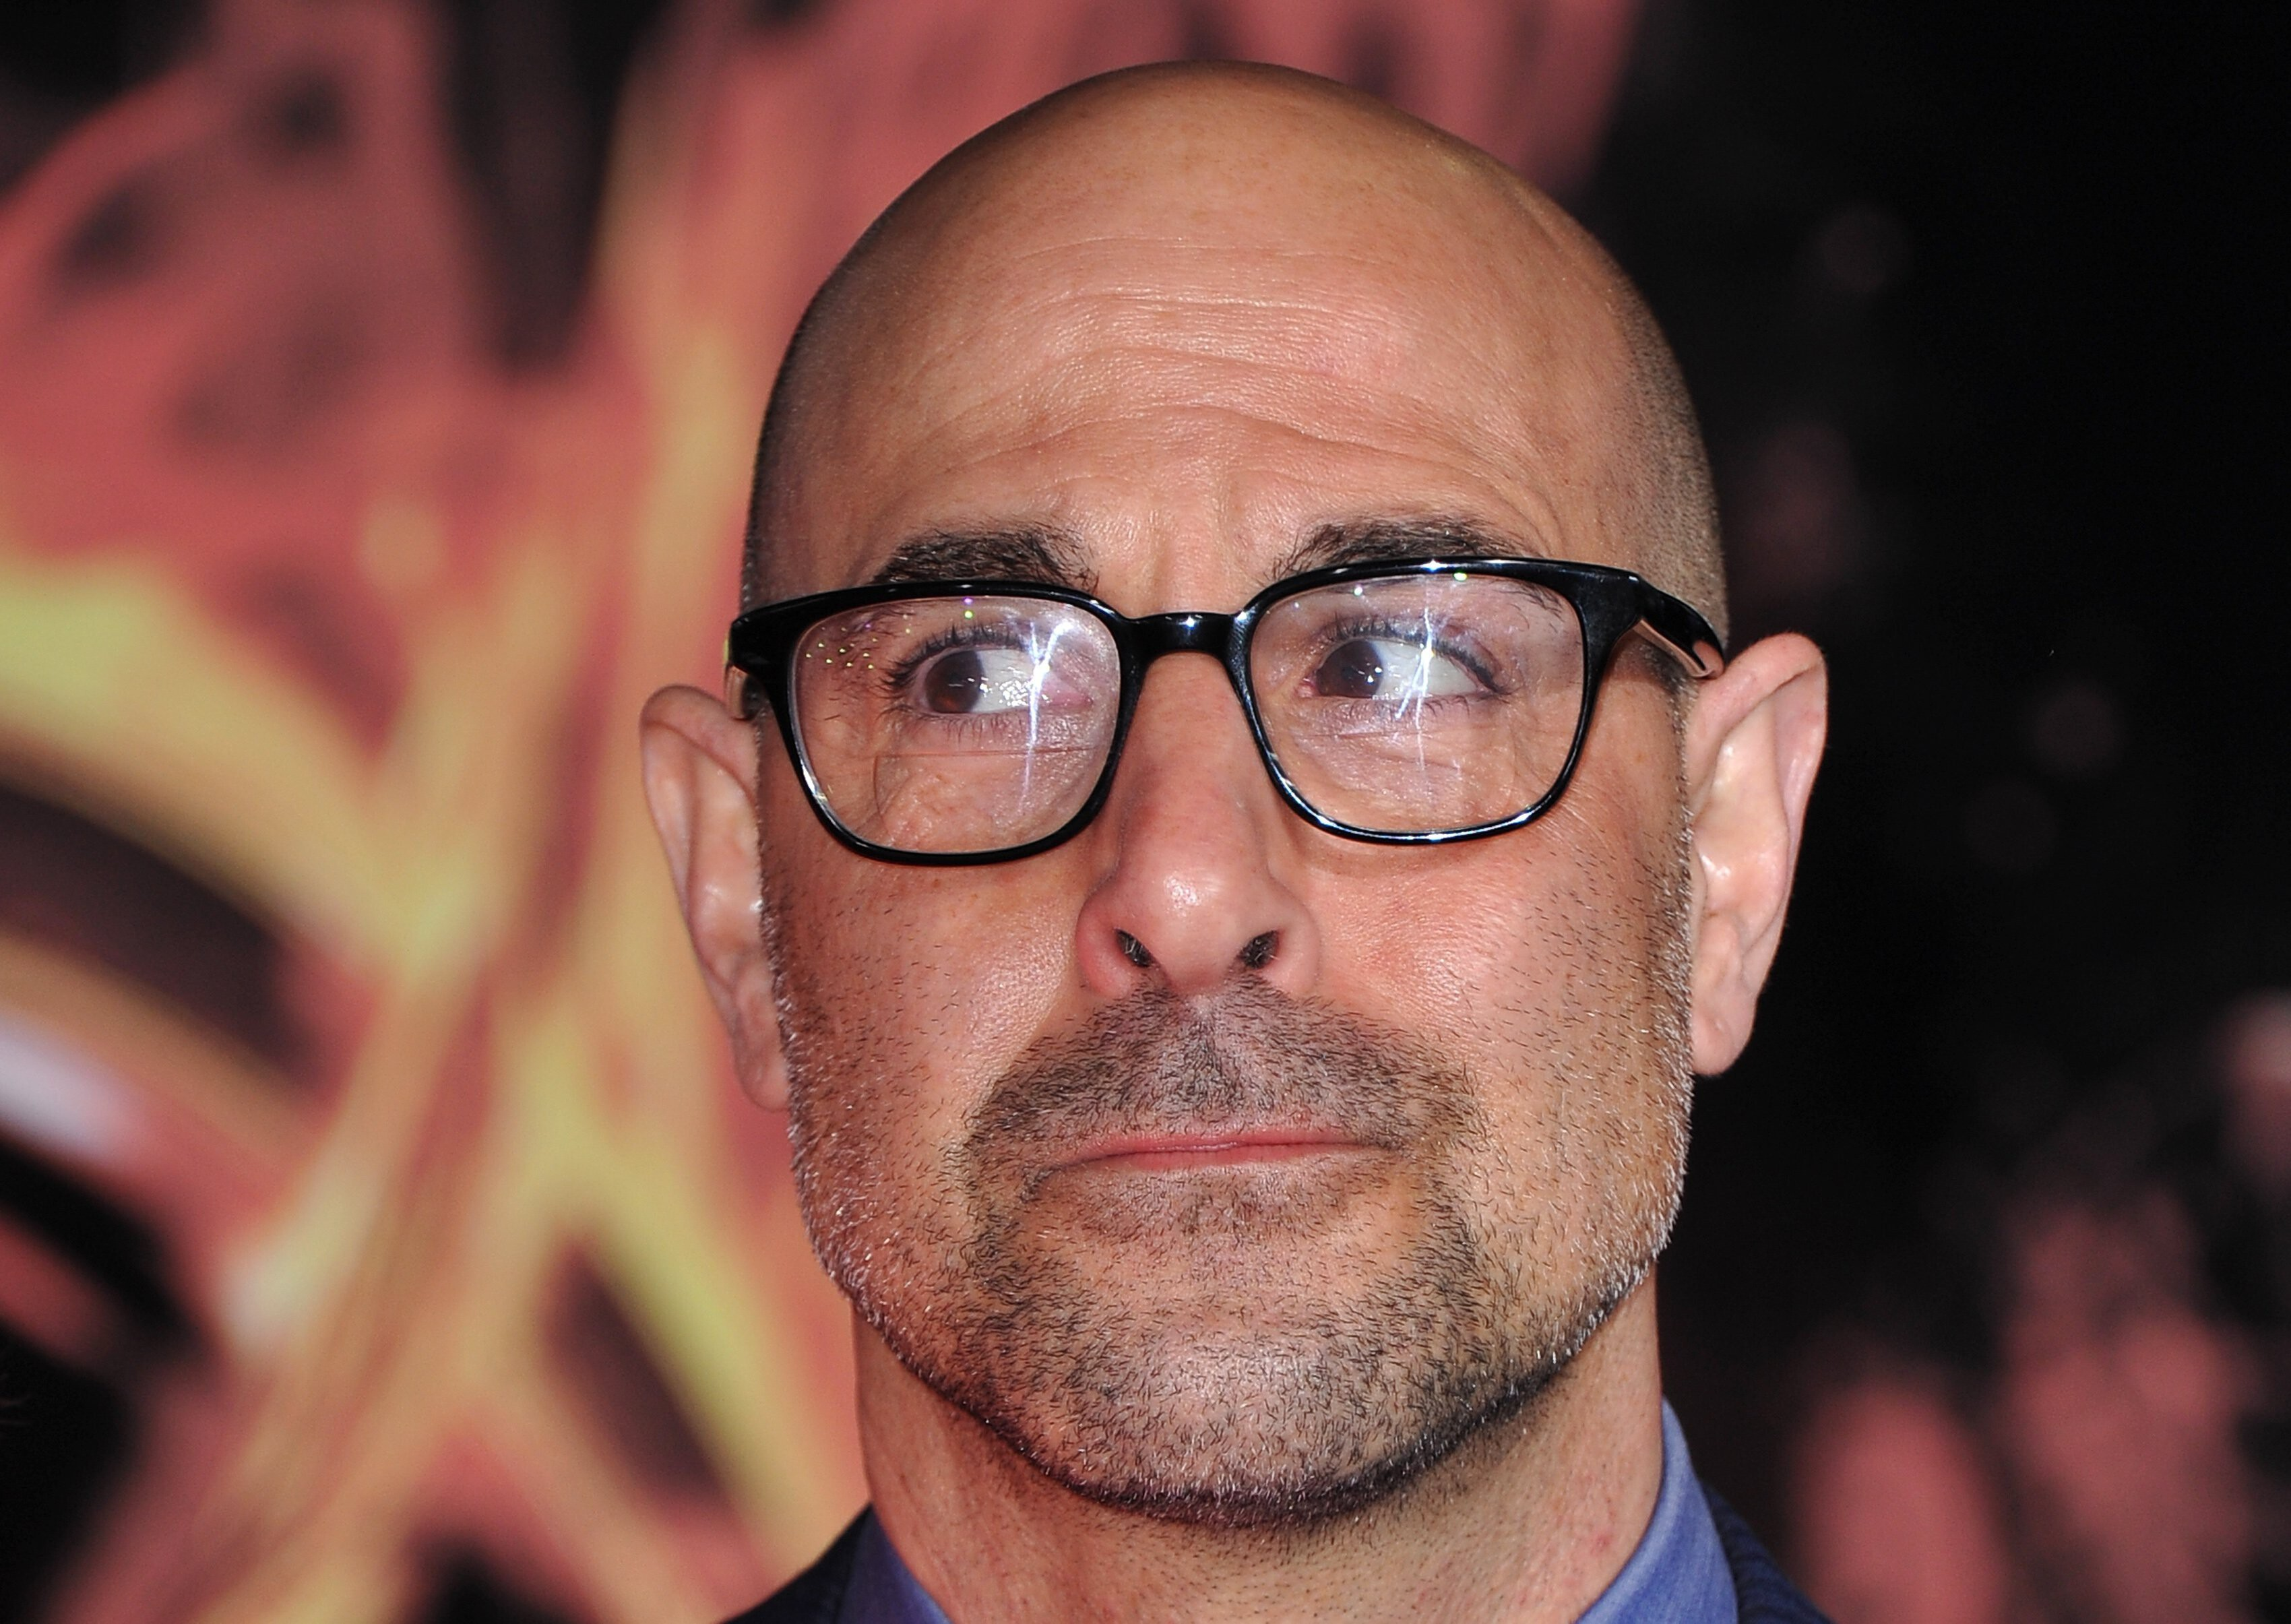 Actor Stanley Tucci reveals he had cancer but was successfully treated